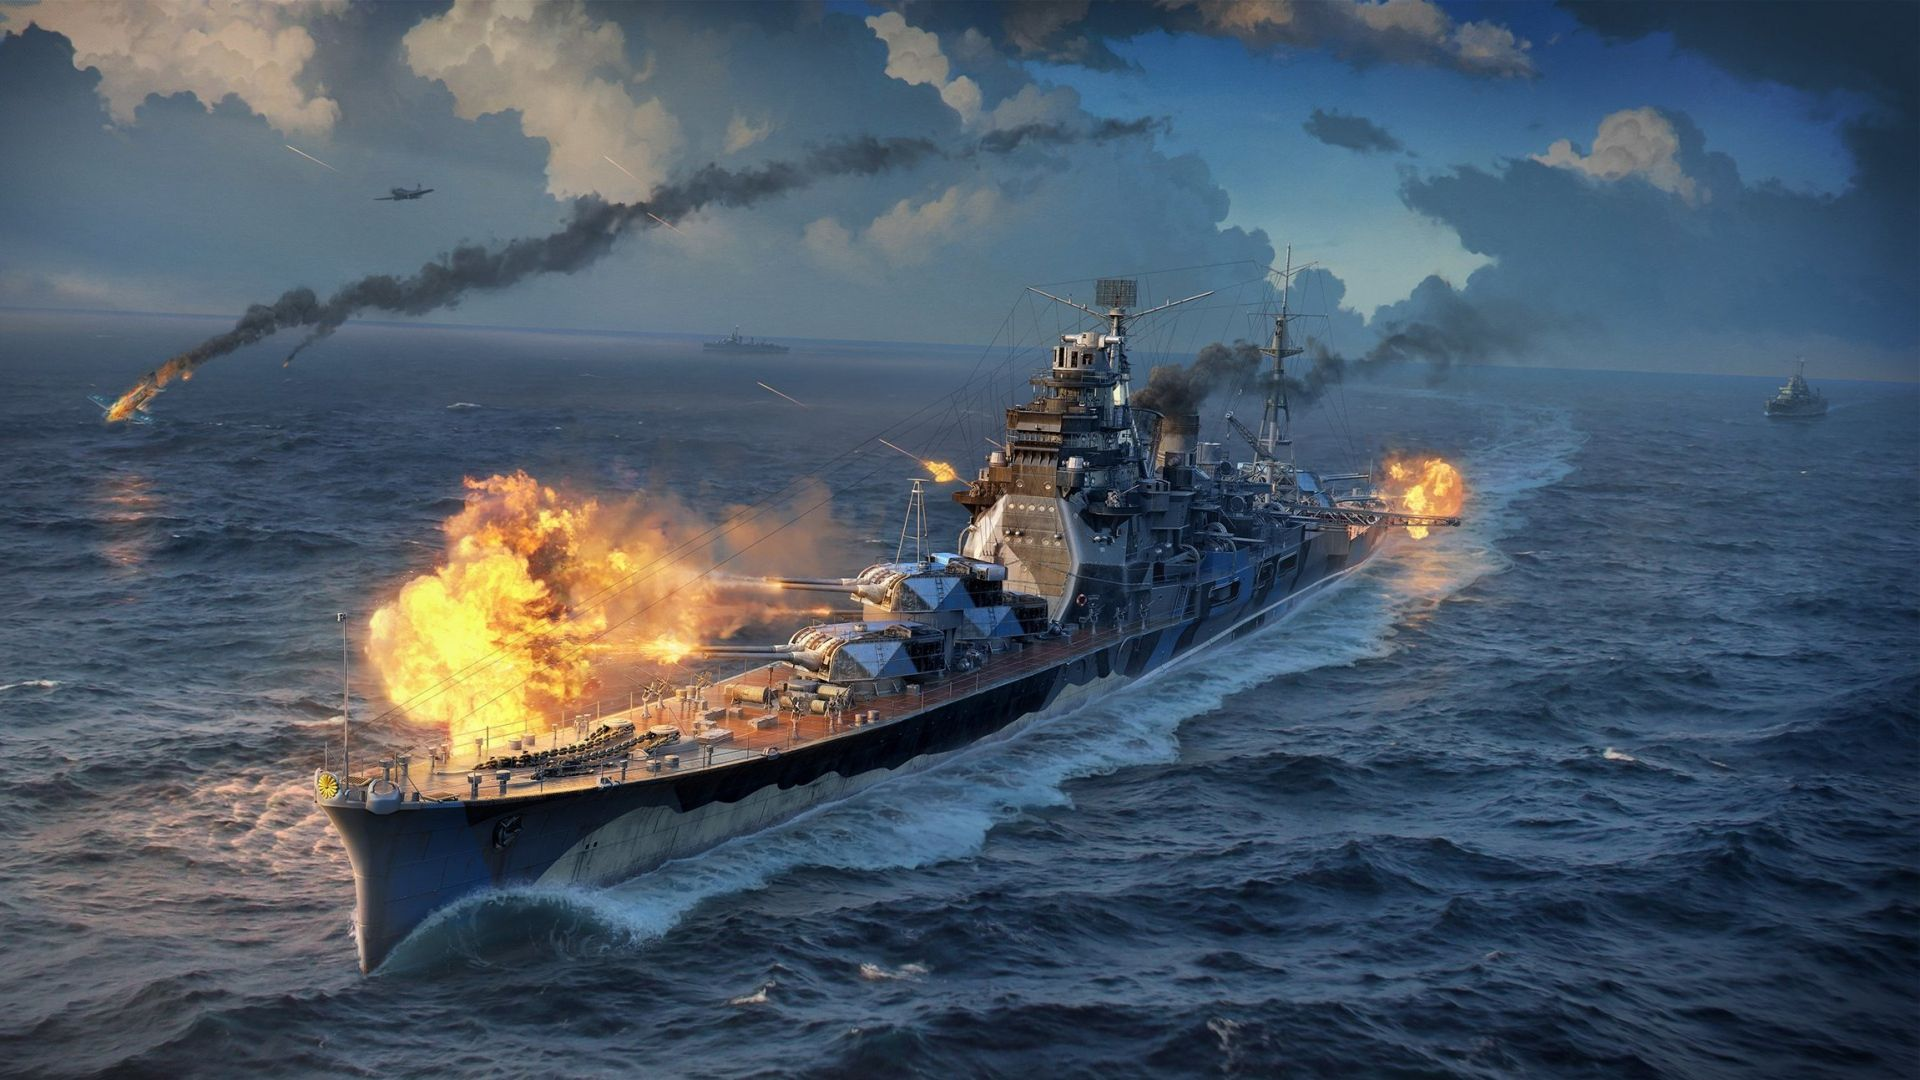 Download Wallpaper 1920x1080 World Of Warships Wargaming Net Wows Full Hd 1080p Hd Background World Of Warships Wallpaper Warship Warship Games